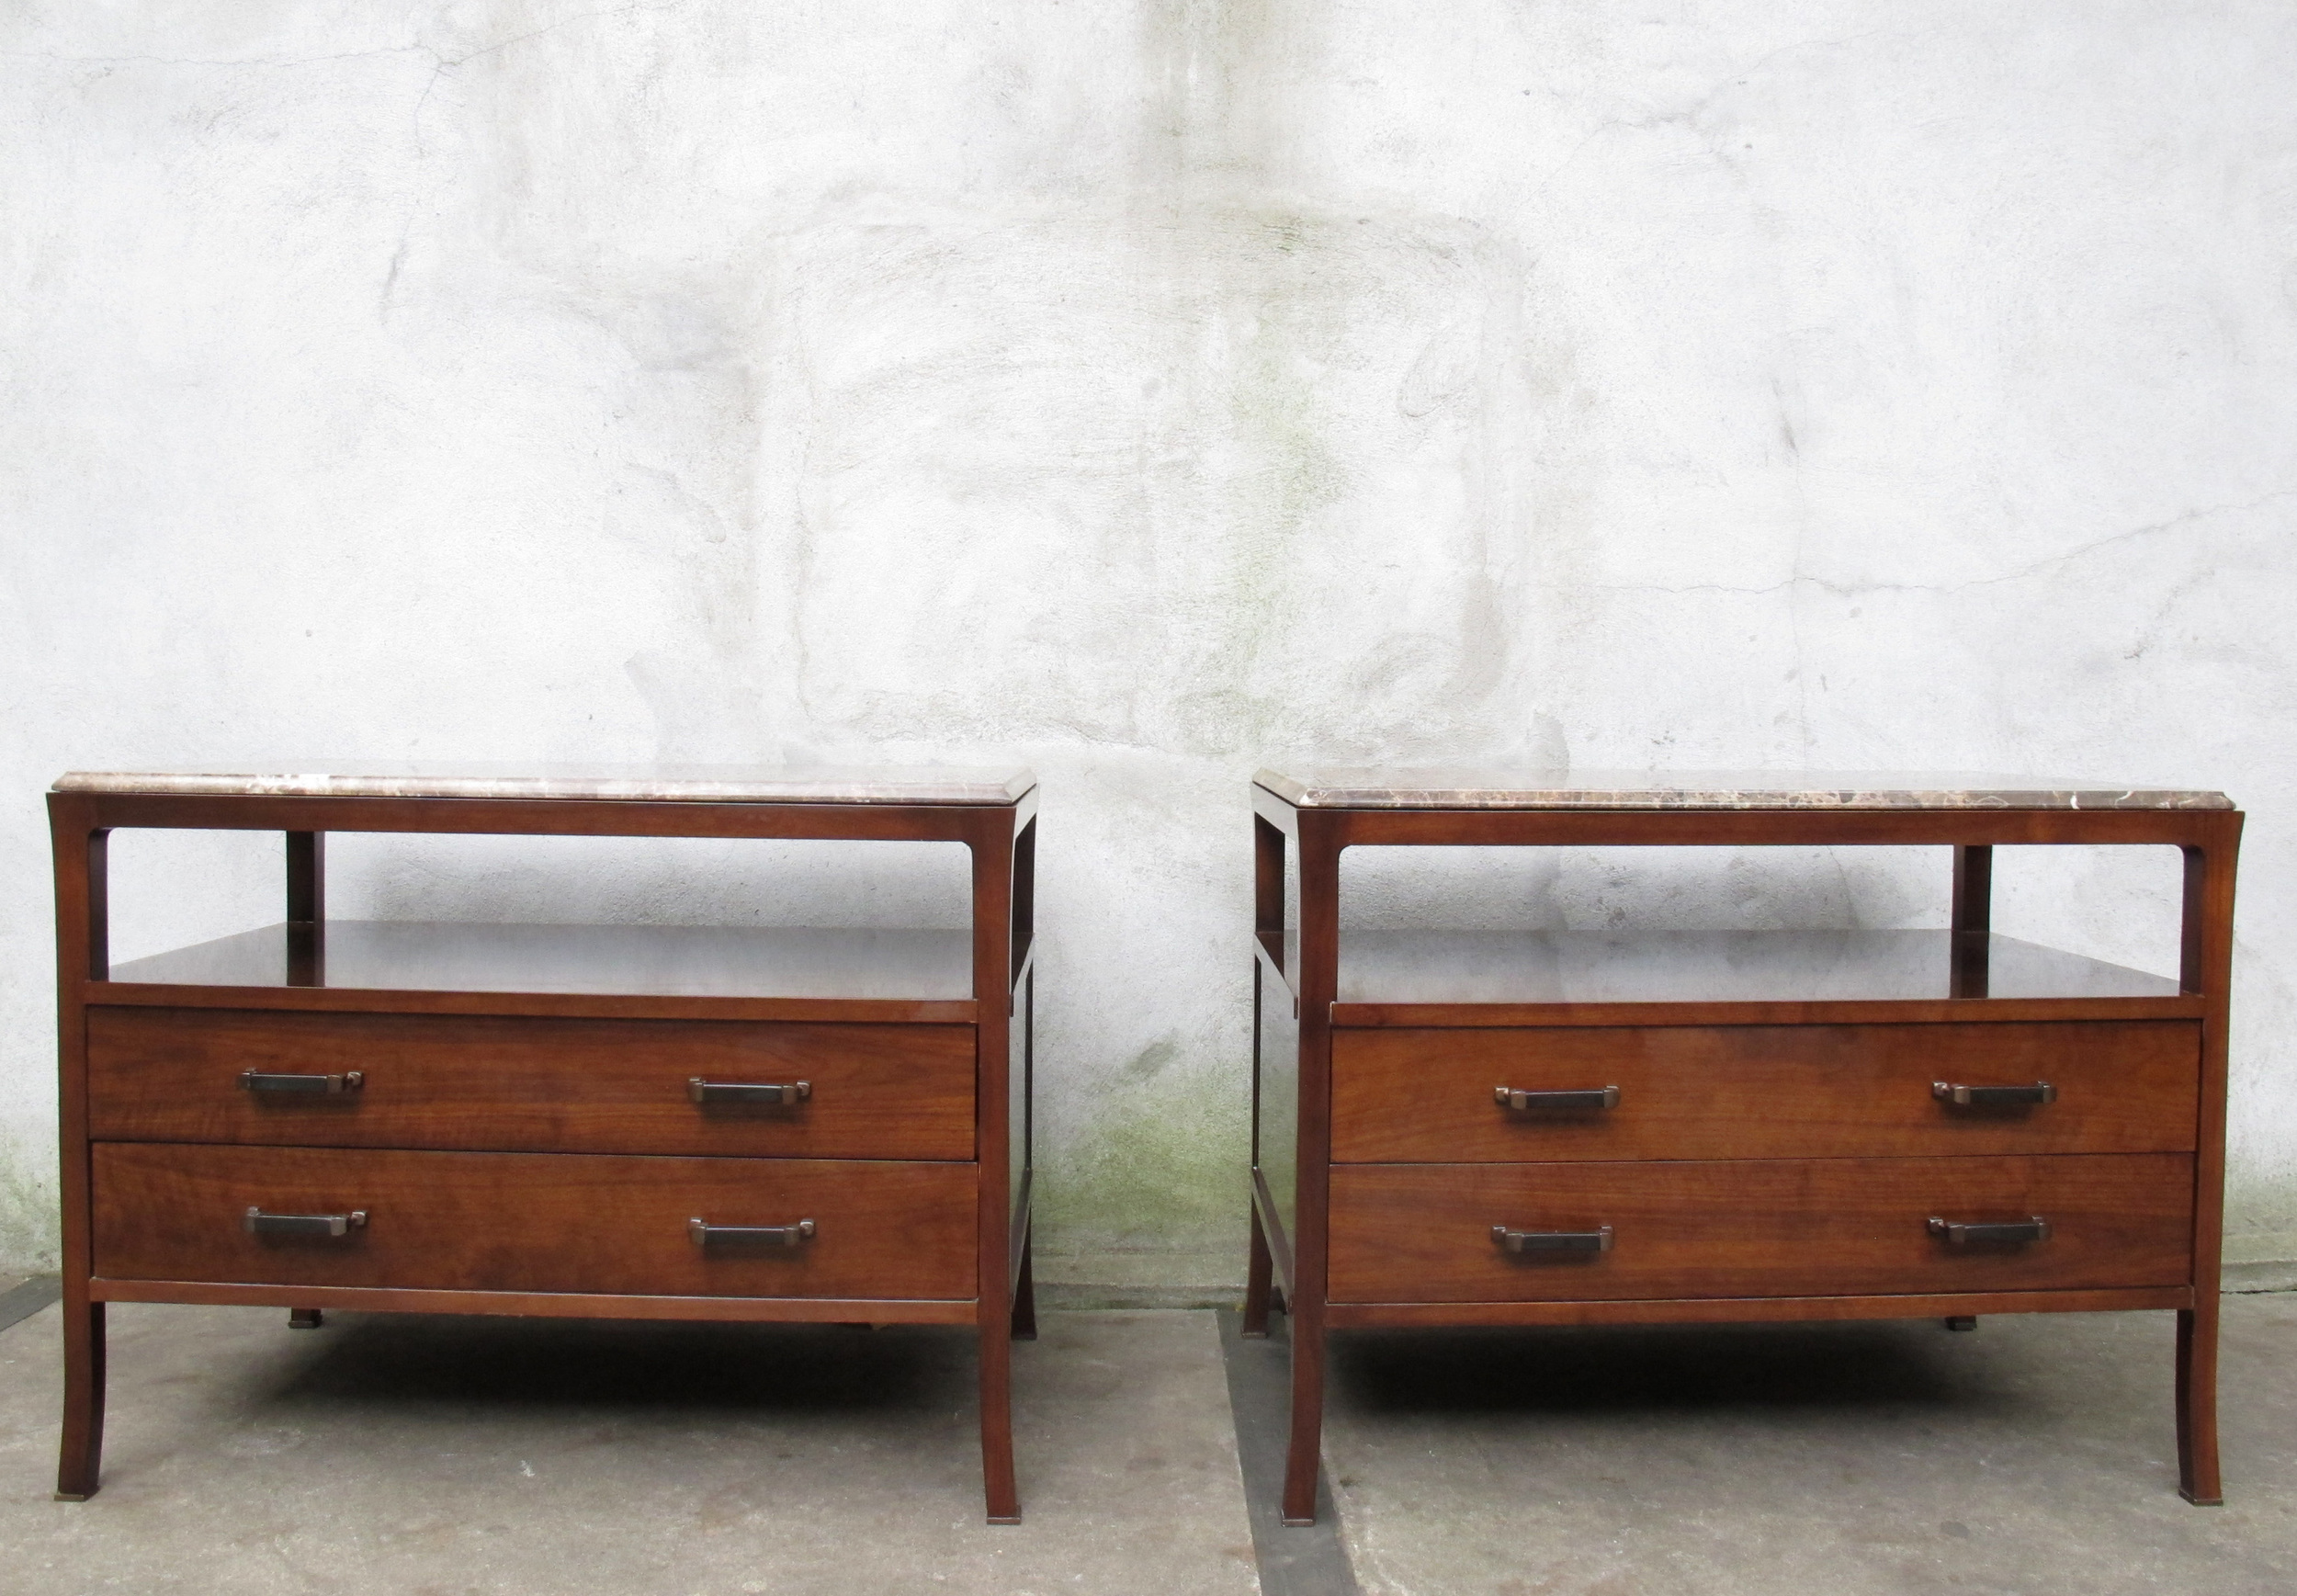 PAIR BAKER STATION CHEST MARBLE NIGHTSTANDS BY BILL SOFIELD